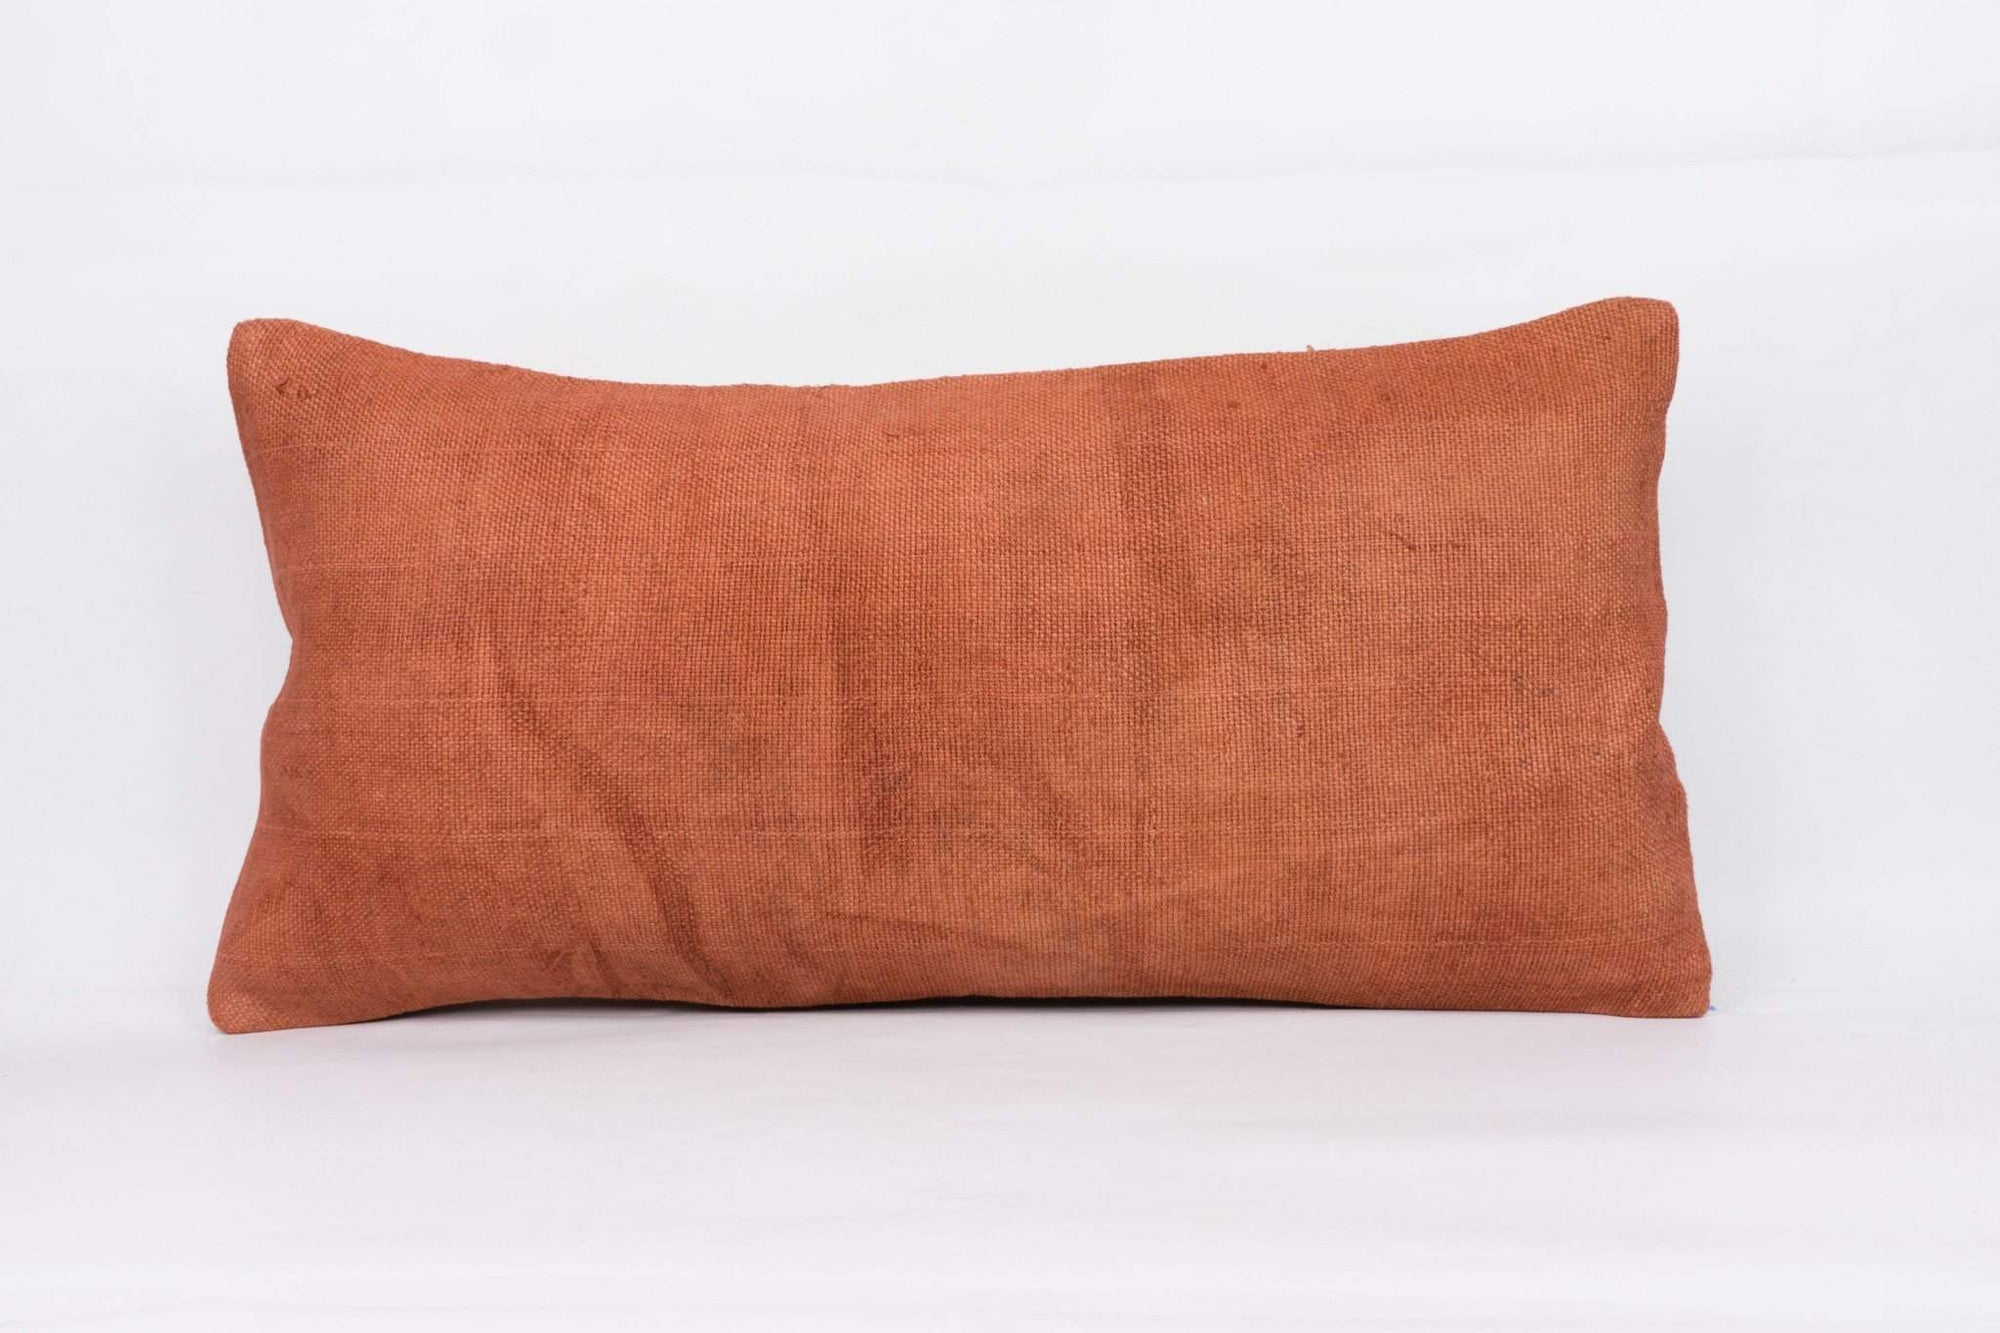 Plain Brown Kilim Pillow Cover 12x24 4174 - kilimpillowstore  - 1